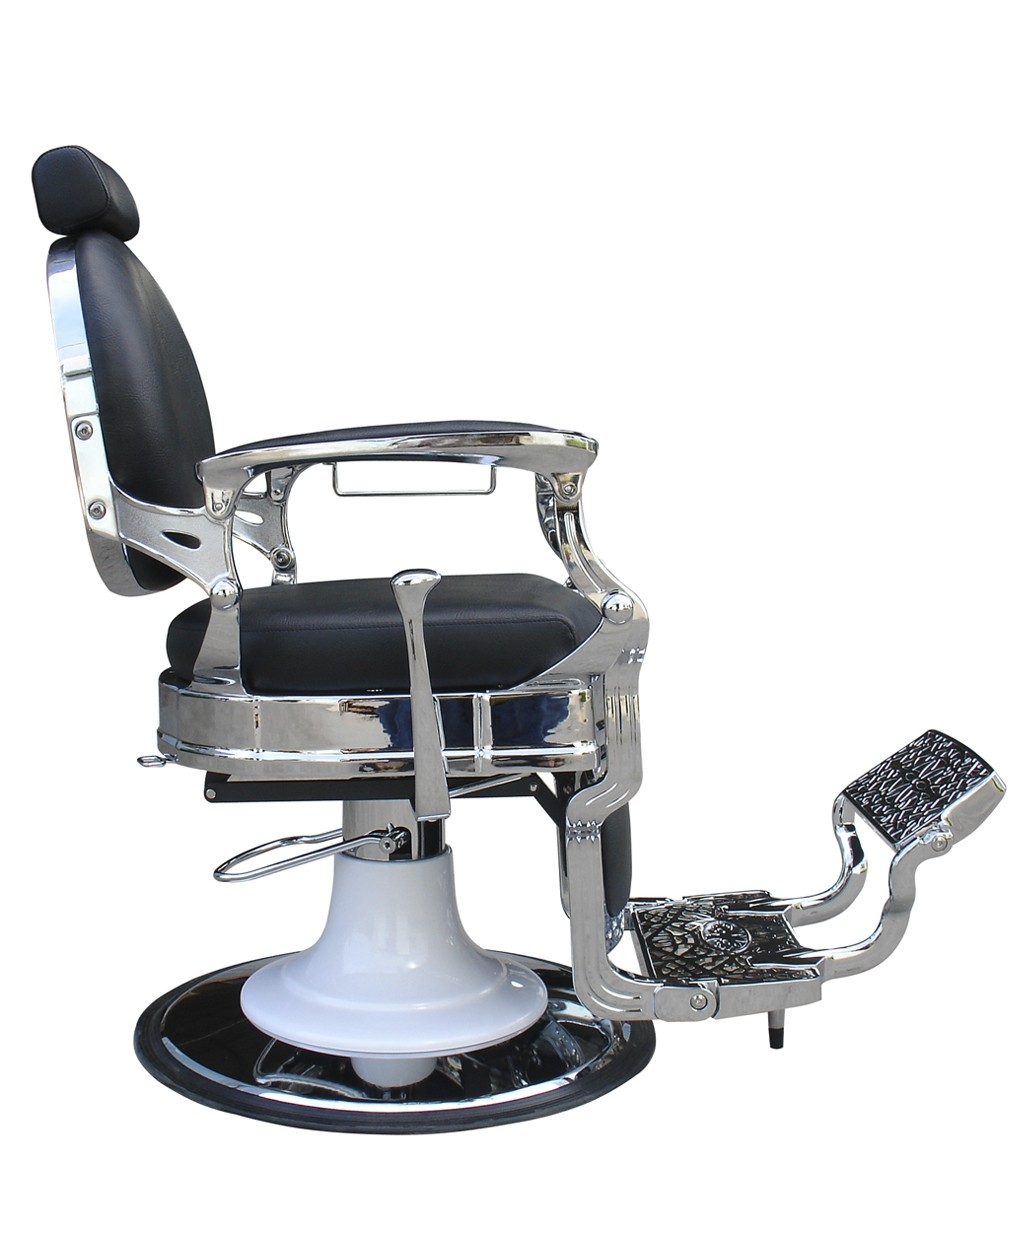 professional barber chair reviews wayfair kitchen chairs capone